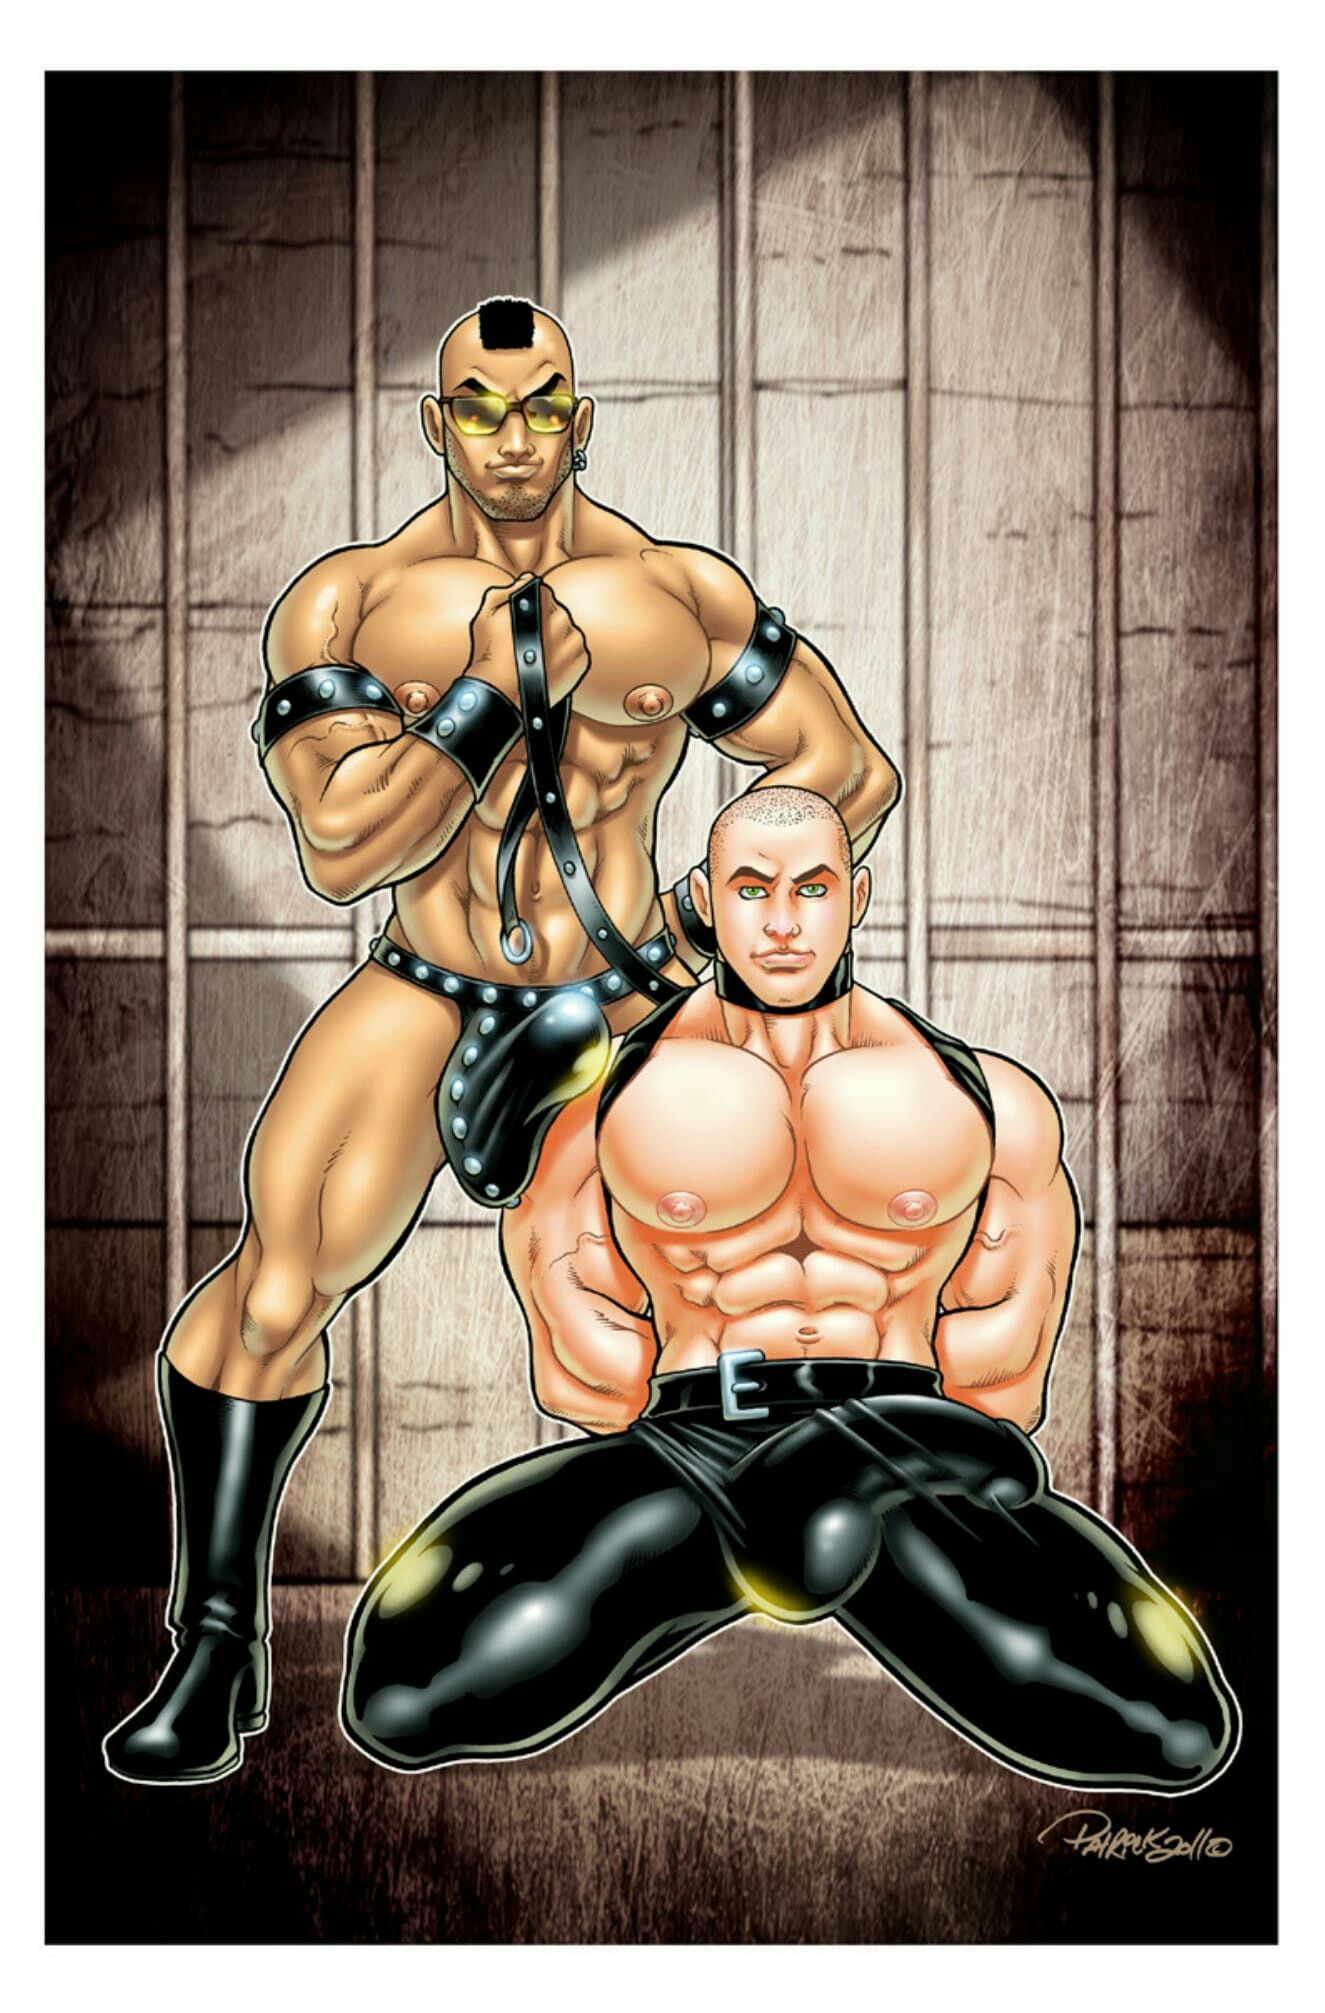 Muscle slave gay